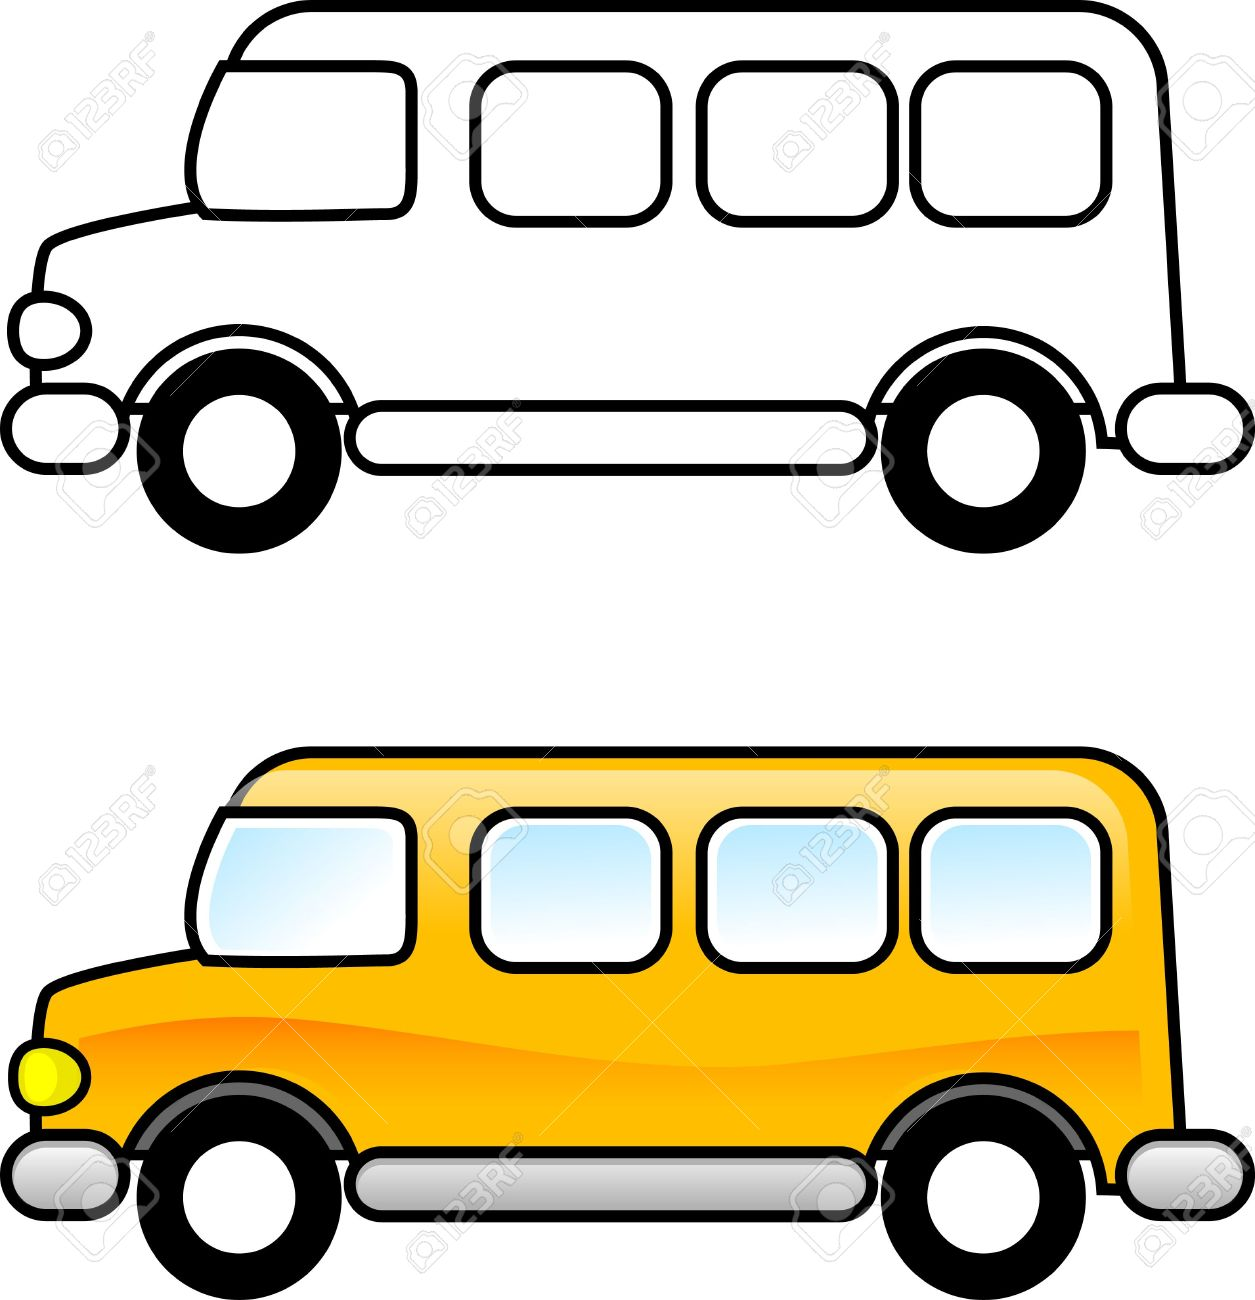 school bus printable coloring page for children or you can use it as a clip